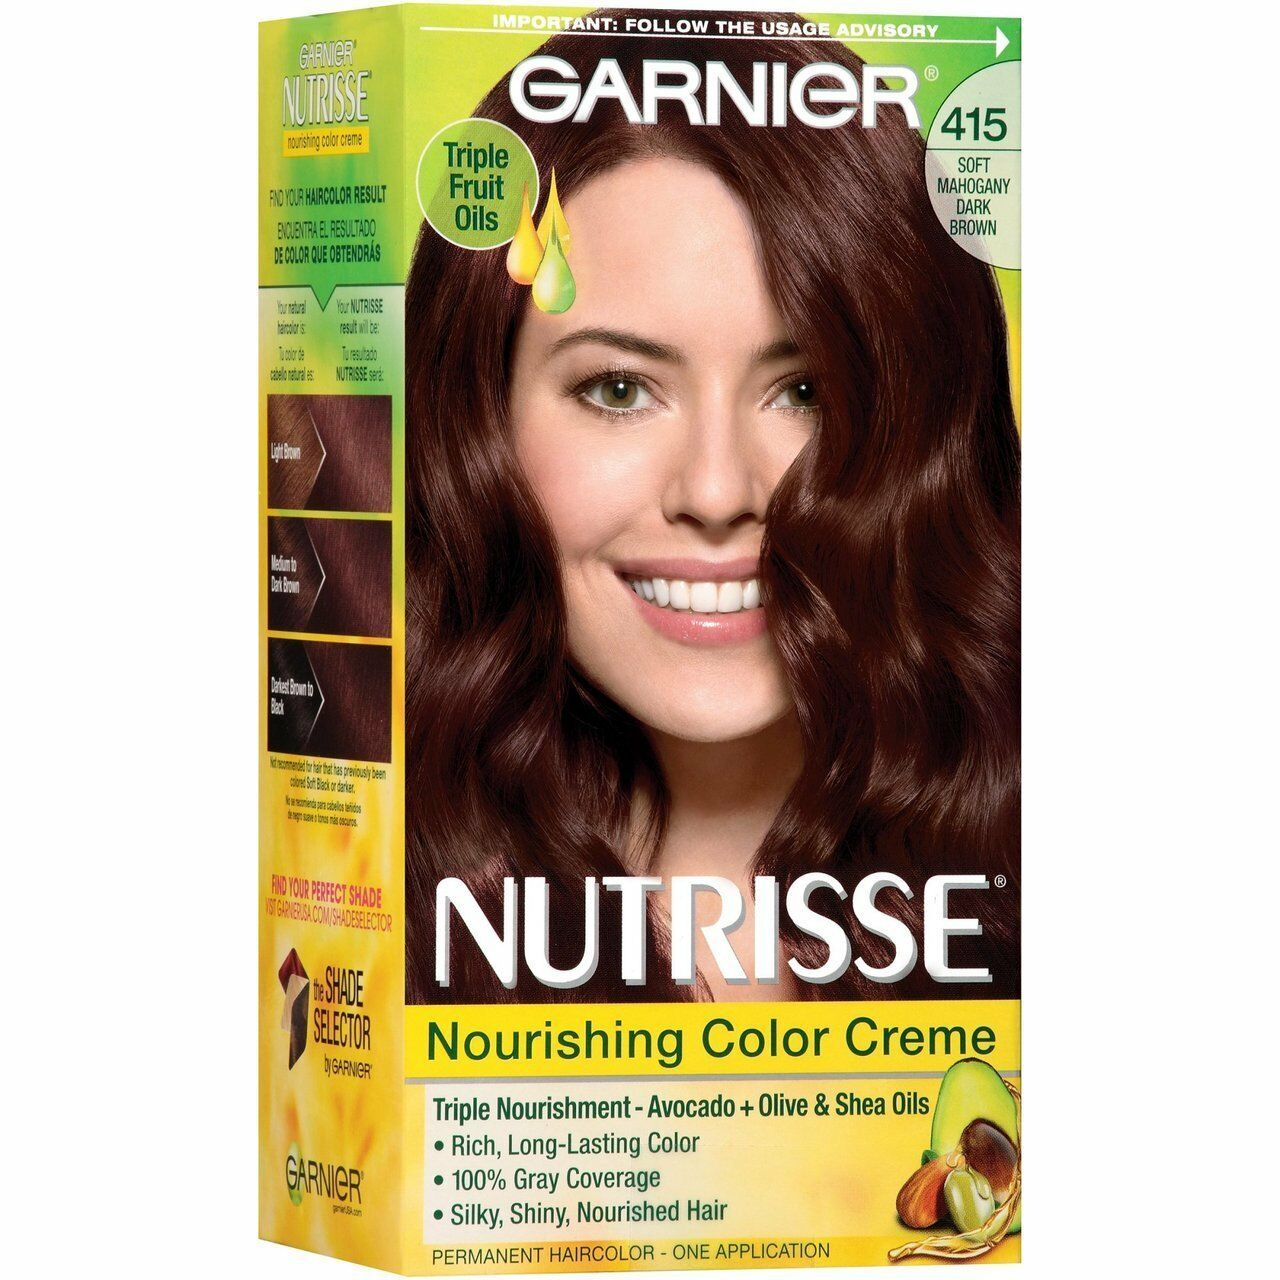 Garnier Nutrisse Nourishing Color Creme 415 Soft Mahogany Dark Brown